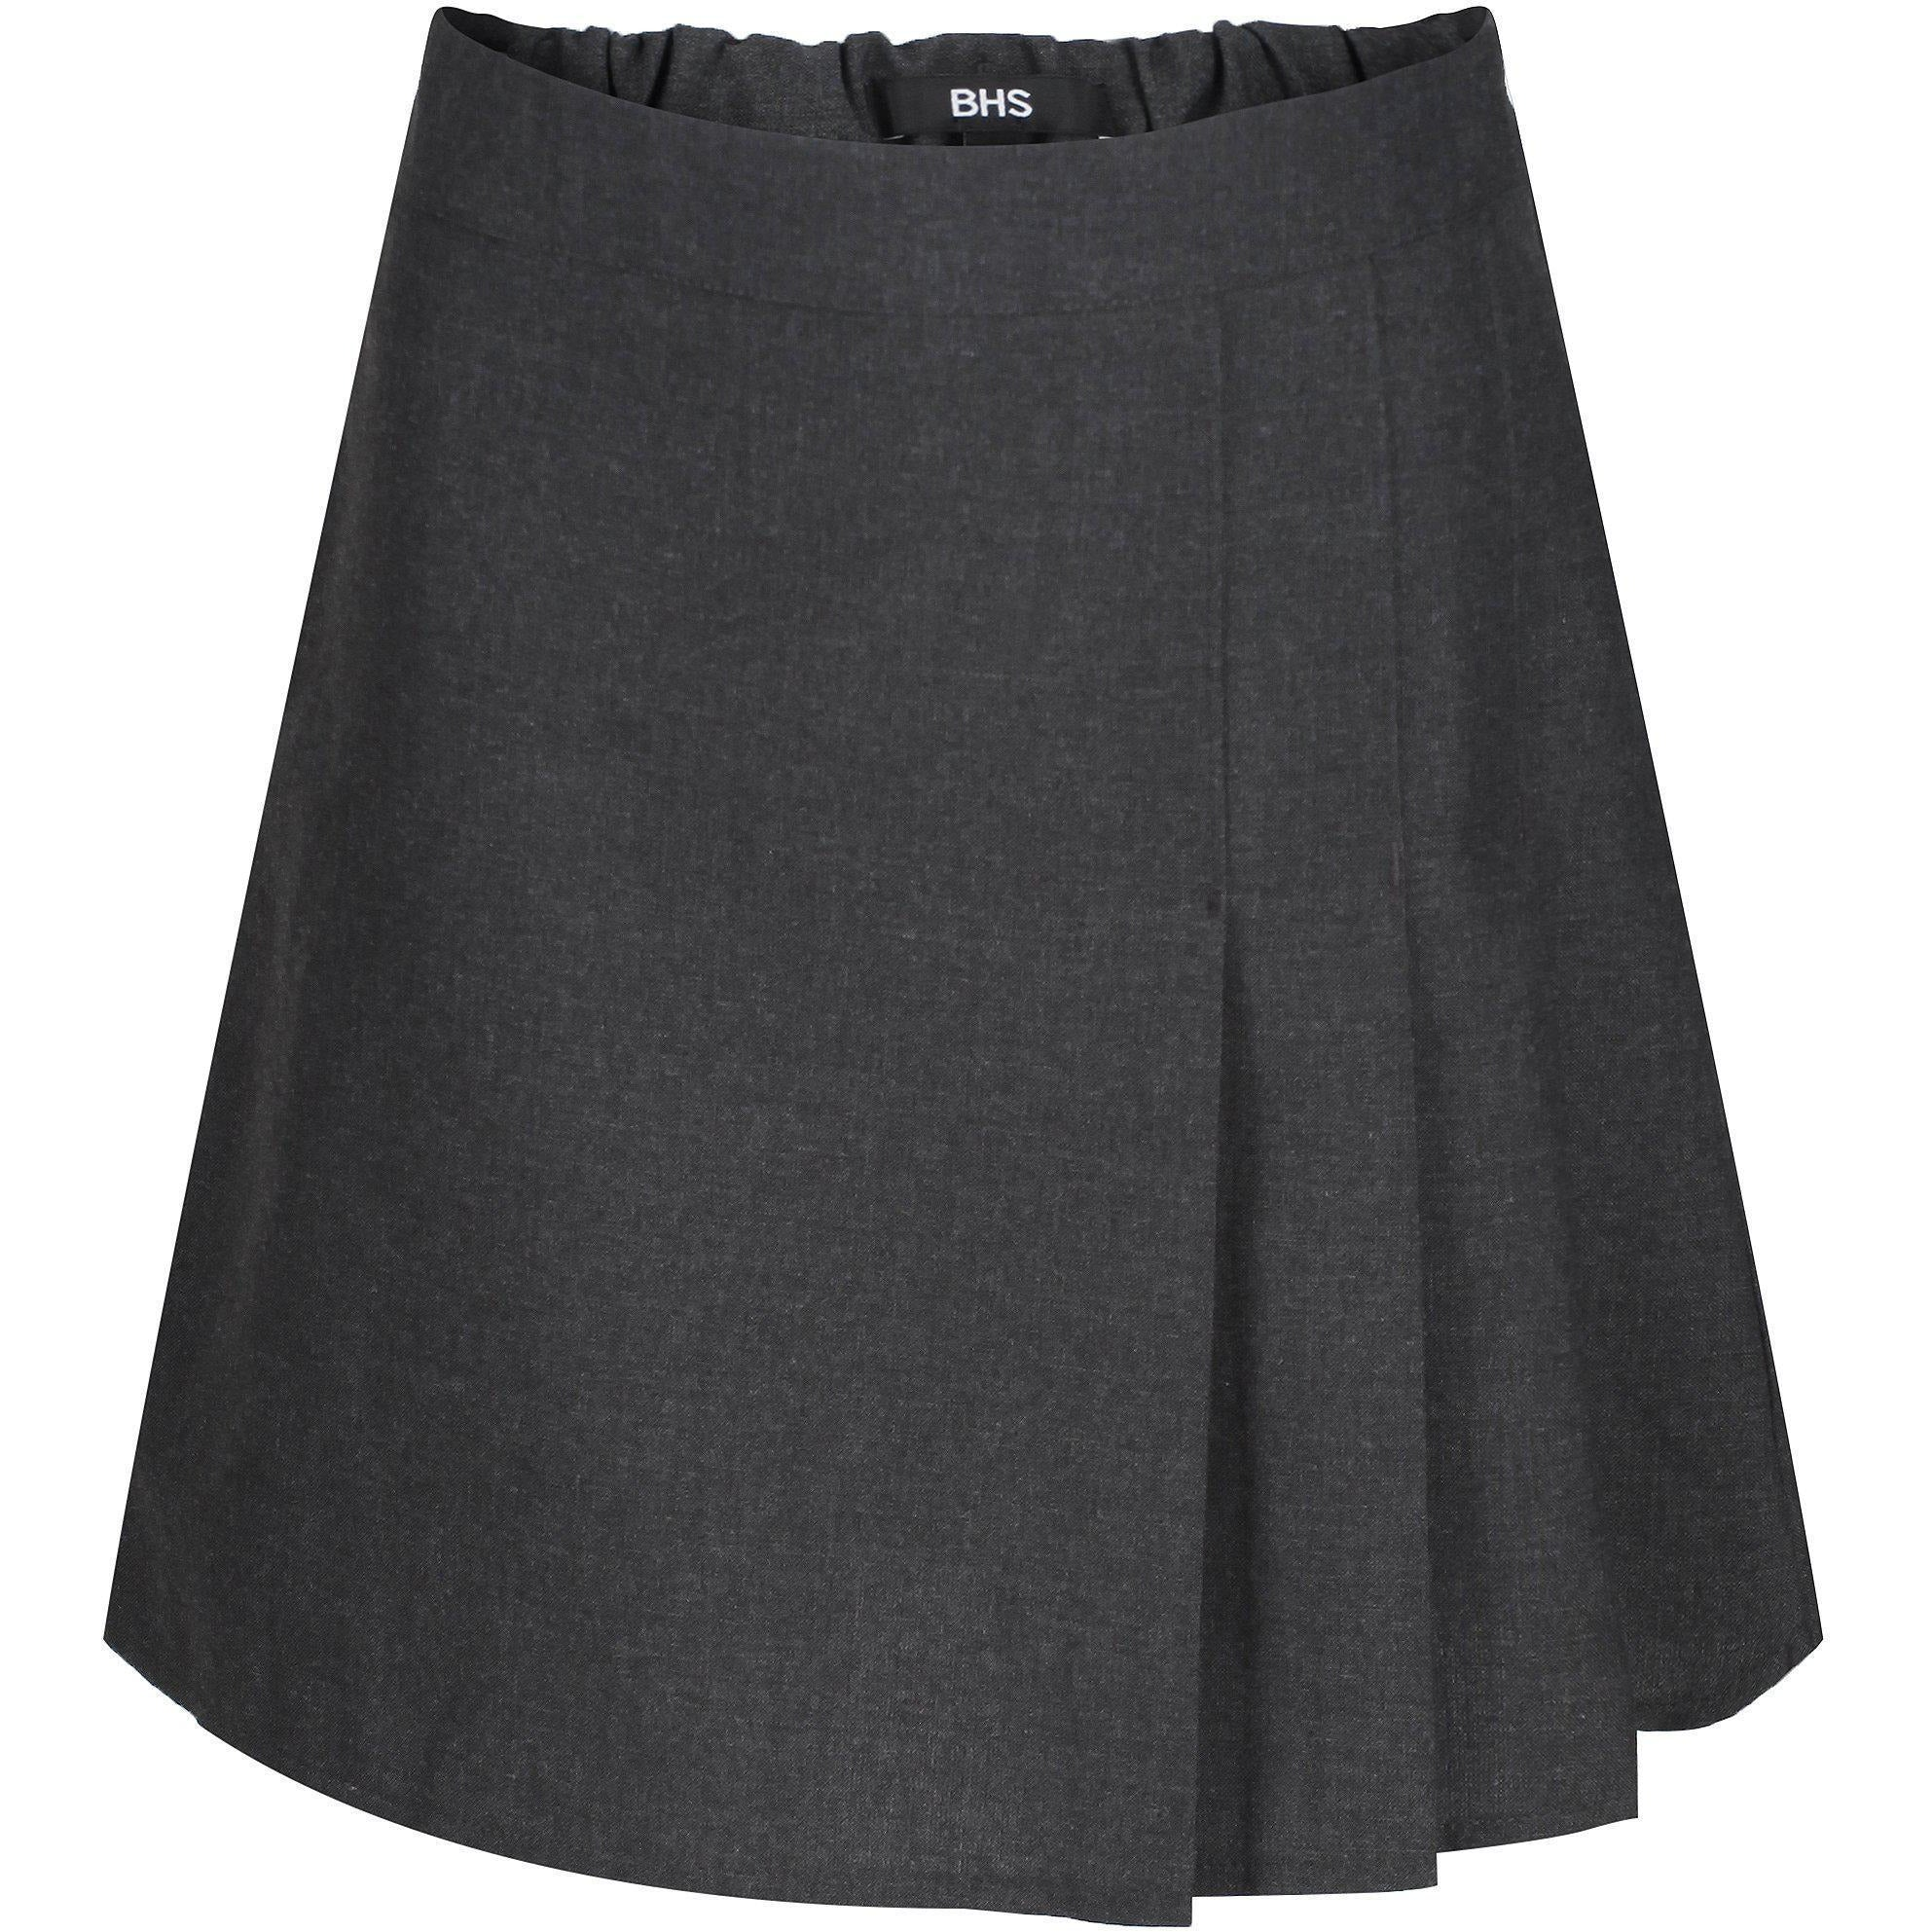 Ages 4-13 Girls School Skirt Adjustable Waist Black Grey Pleated